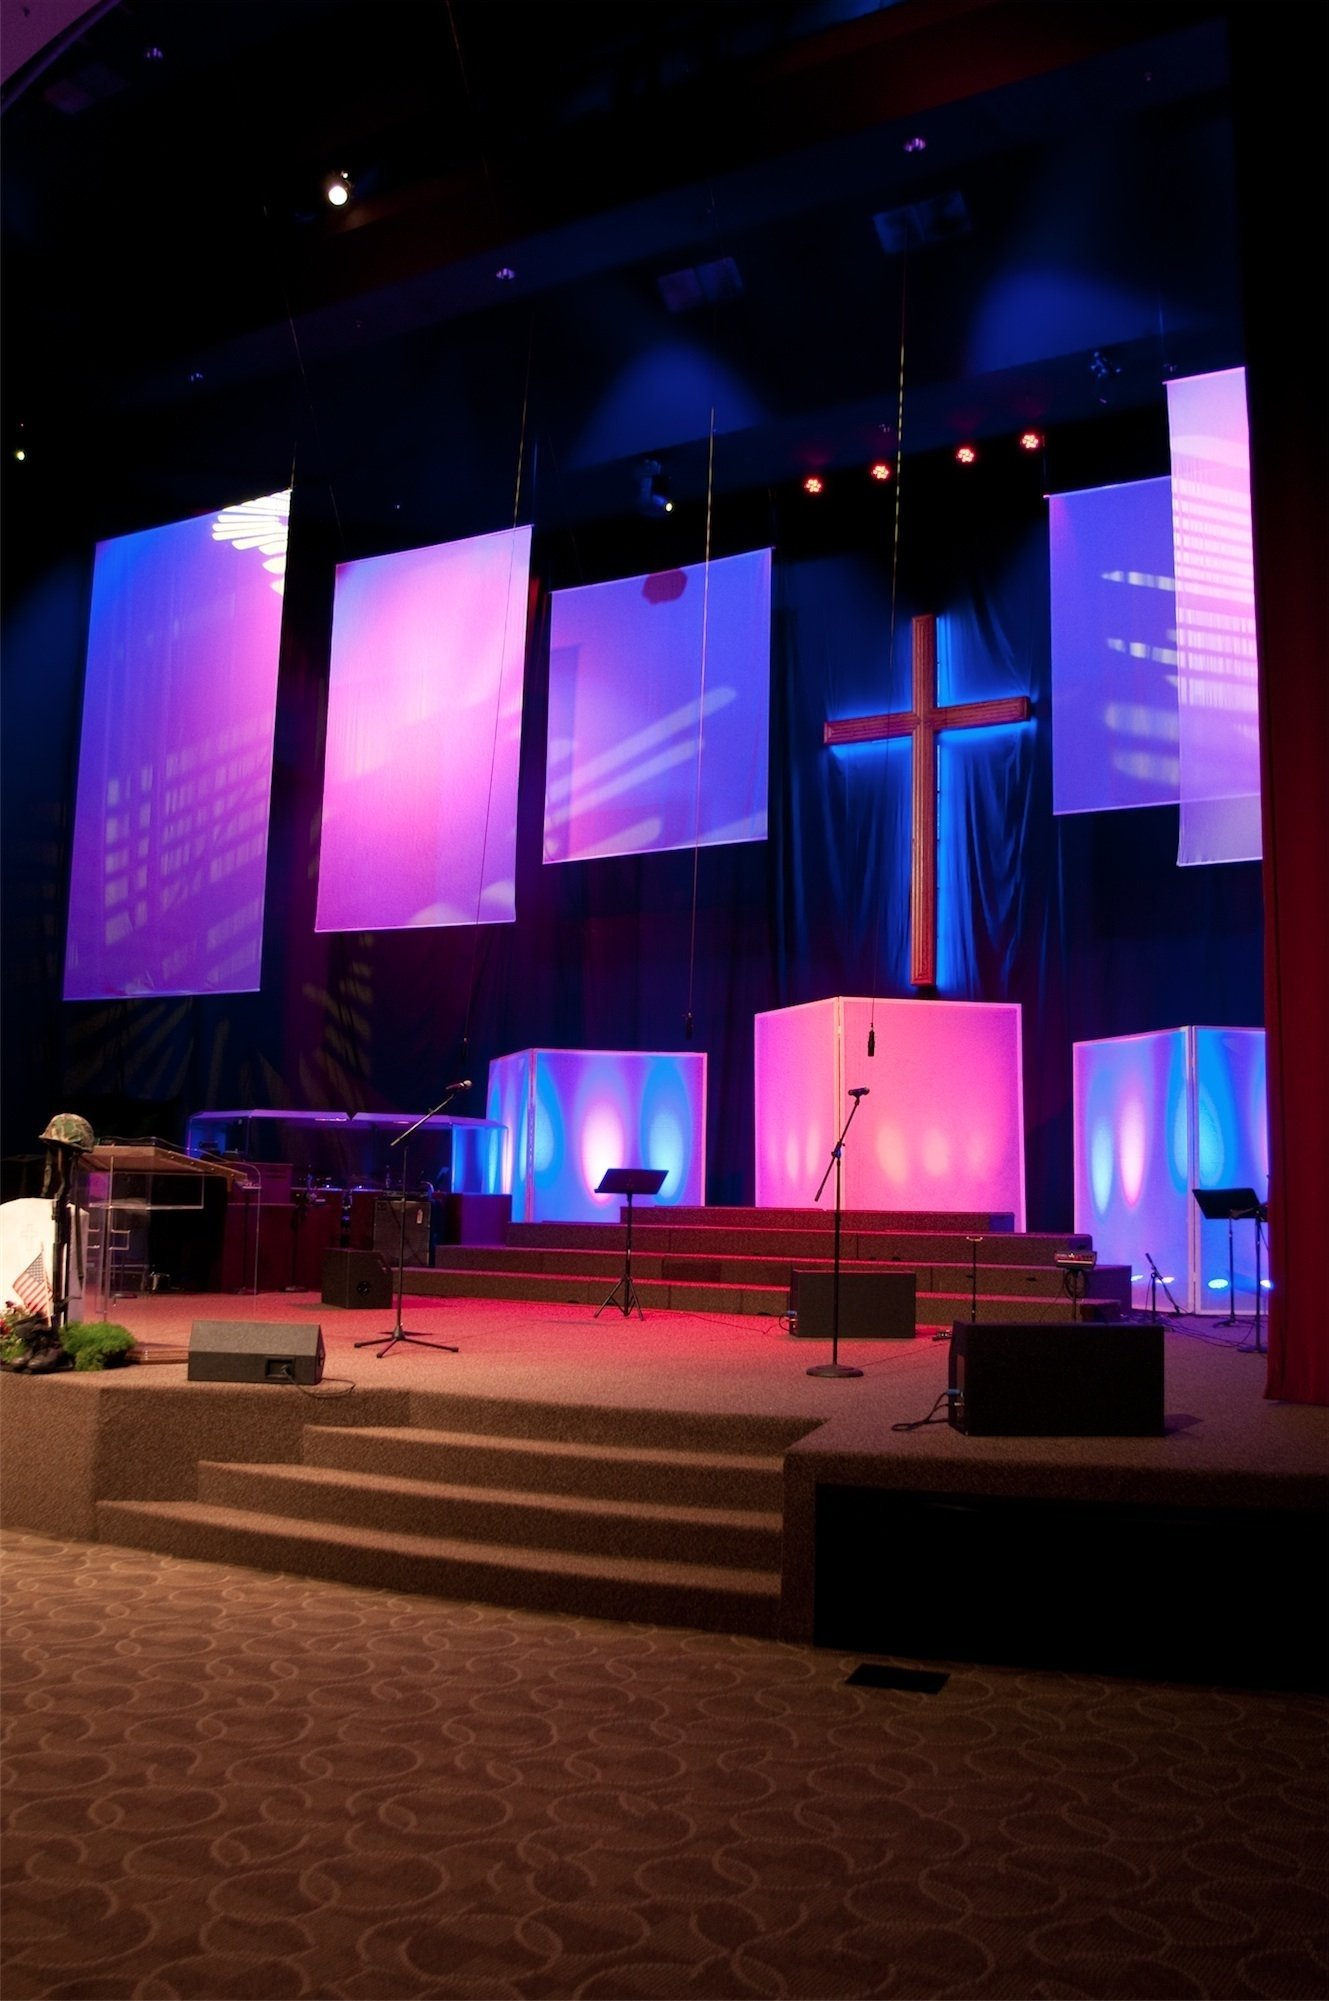 10 Unique Small Church Stage Design Ideas small church stage design ideas utrails home design church stage 2020